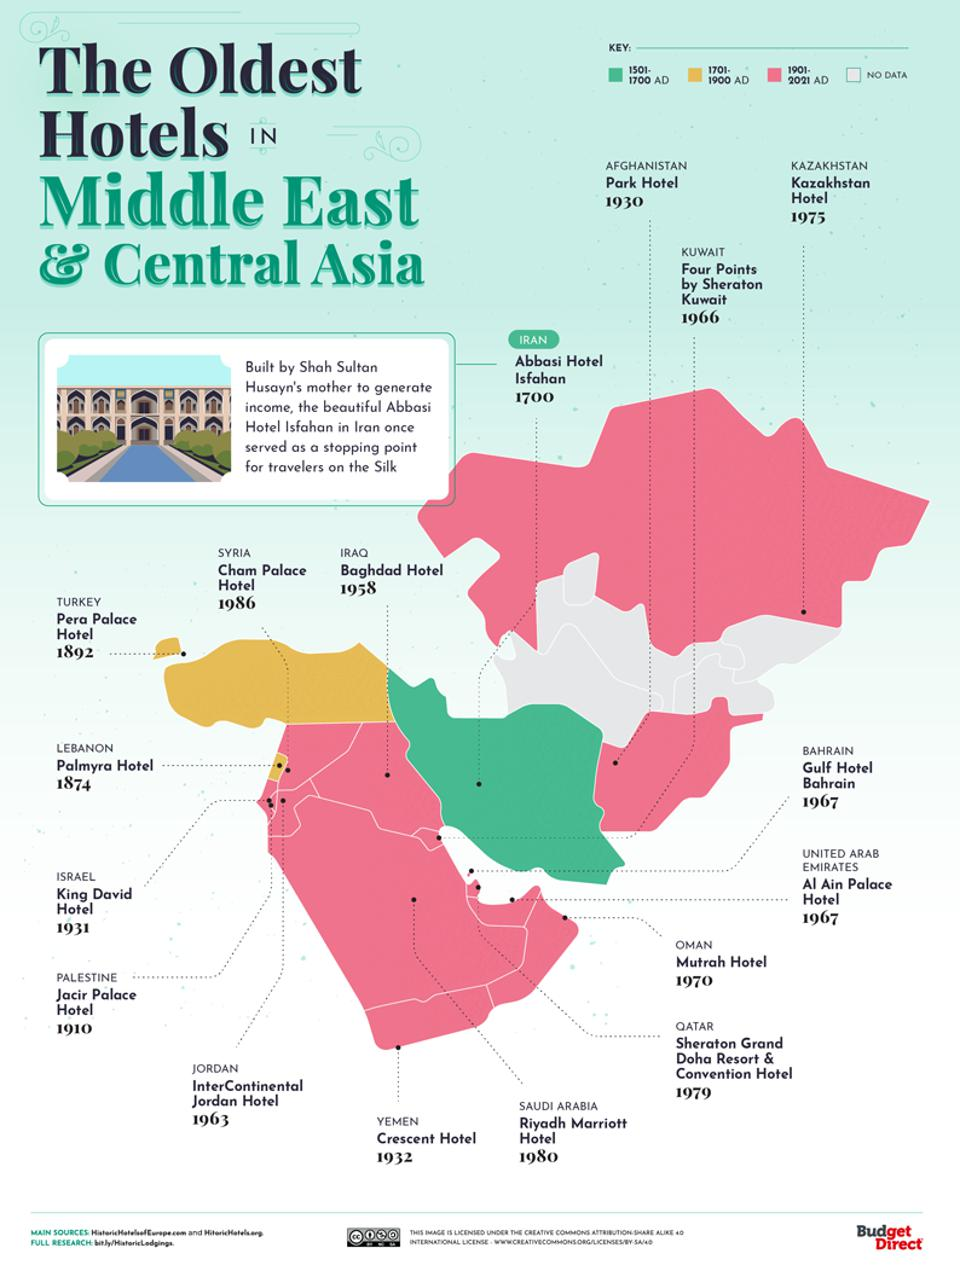 A map of the oldest hotels in the Middle East and Central Asia.